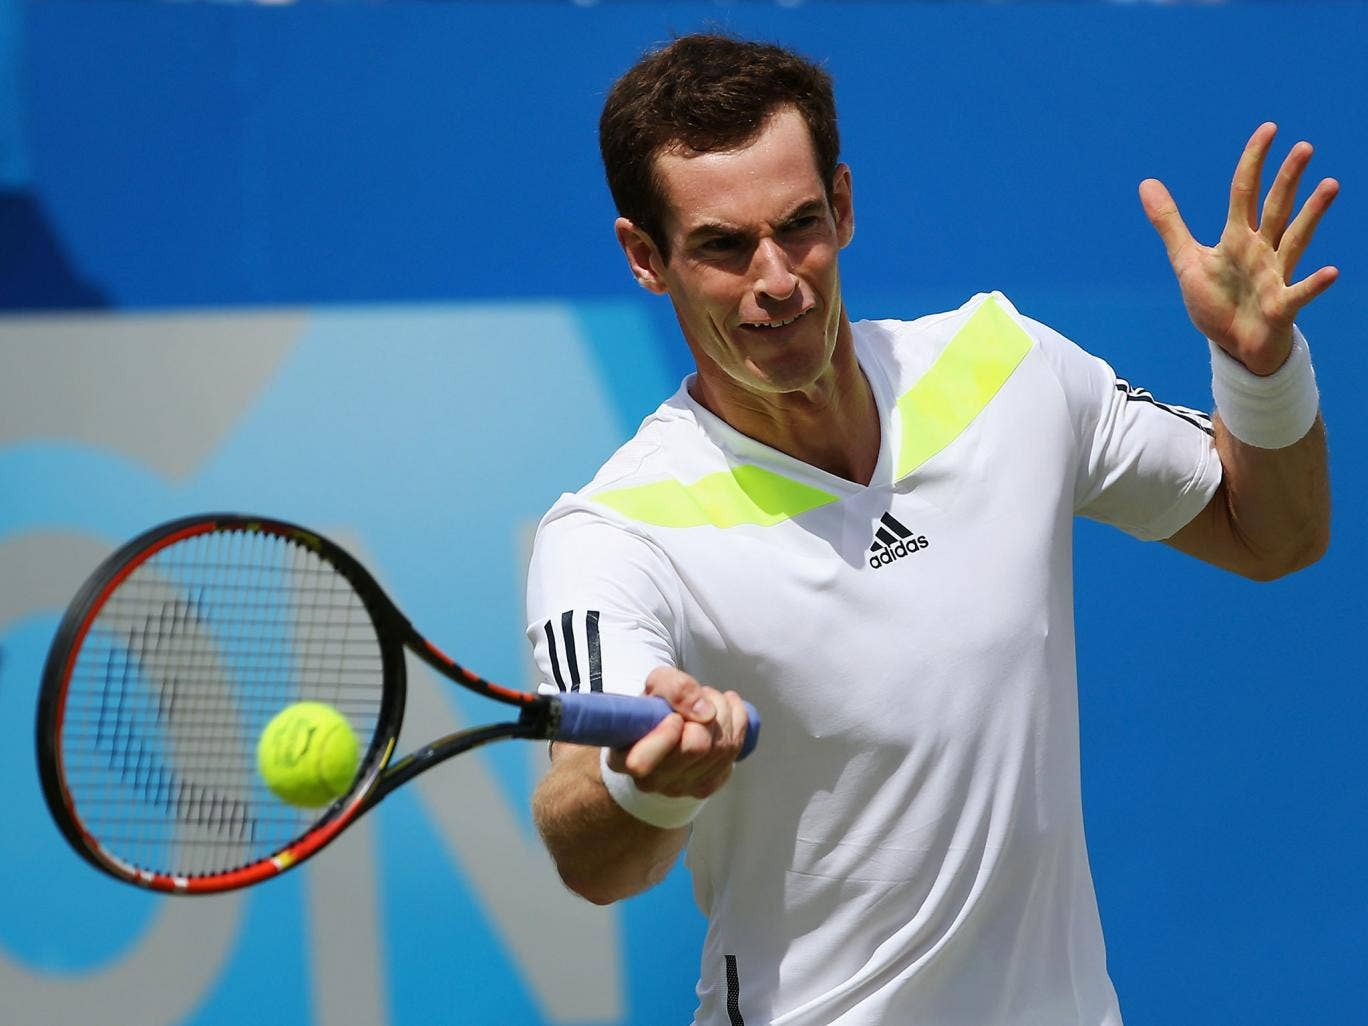 Andy Murray of Great Britain celebrates after winning against Paul-Henri Mathieu of France during their Men's Singles match on day three of the Aegon Championships